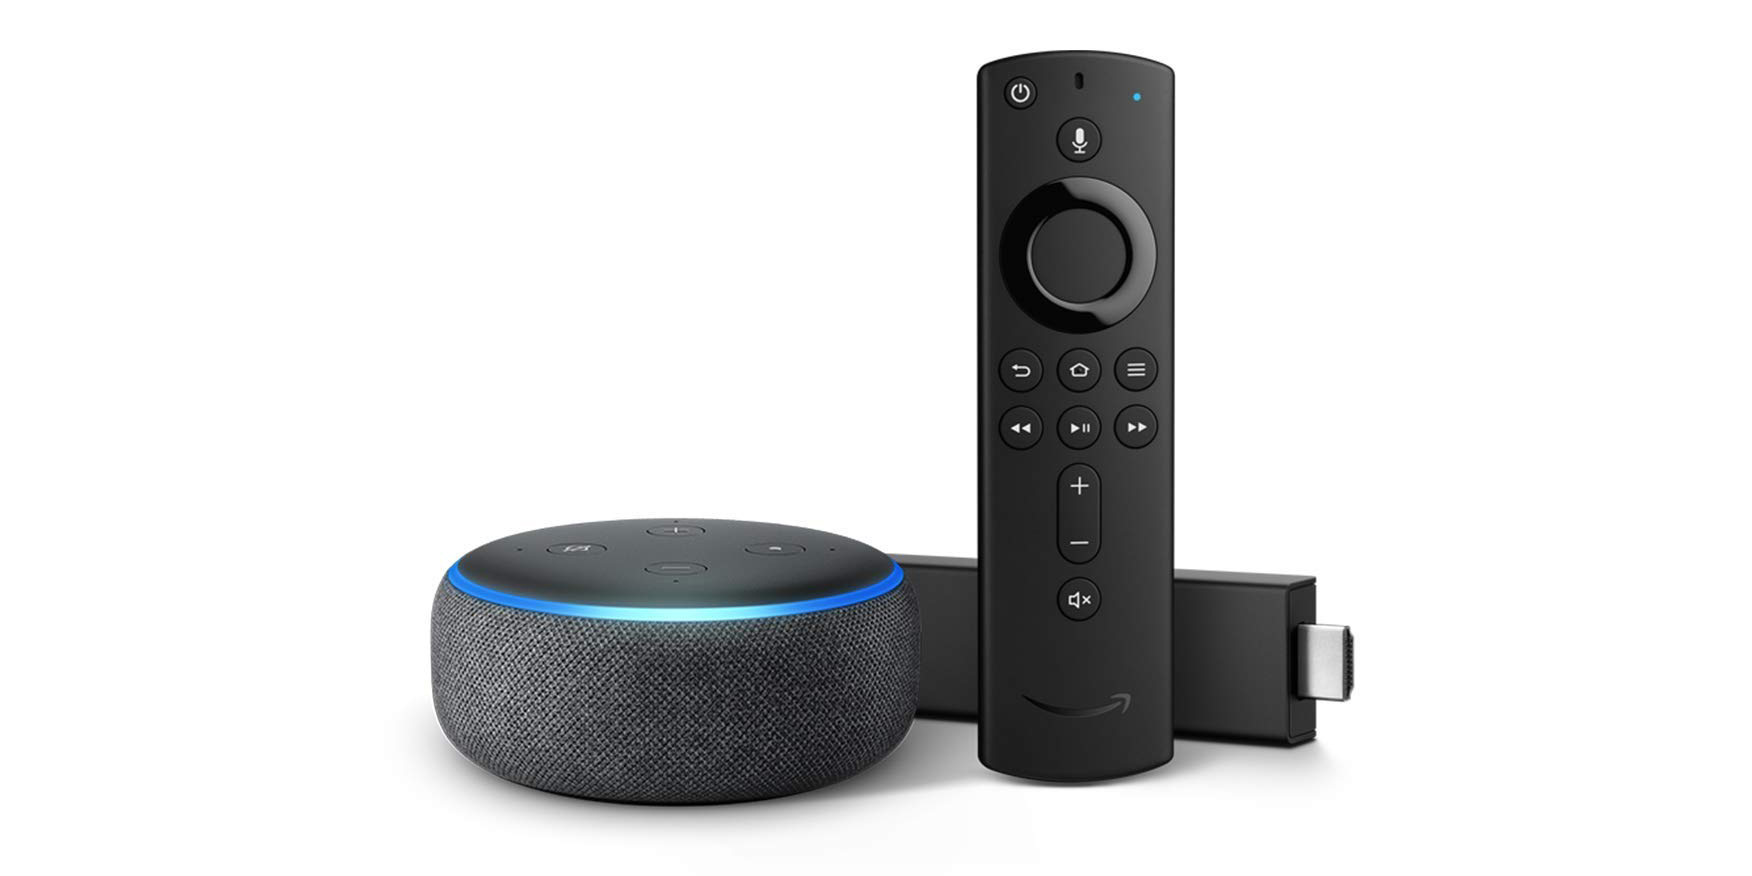 Amazon's new Fire TV Stick 4K comes bundled w/ the latest Echo Dot for $80 (20% off)